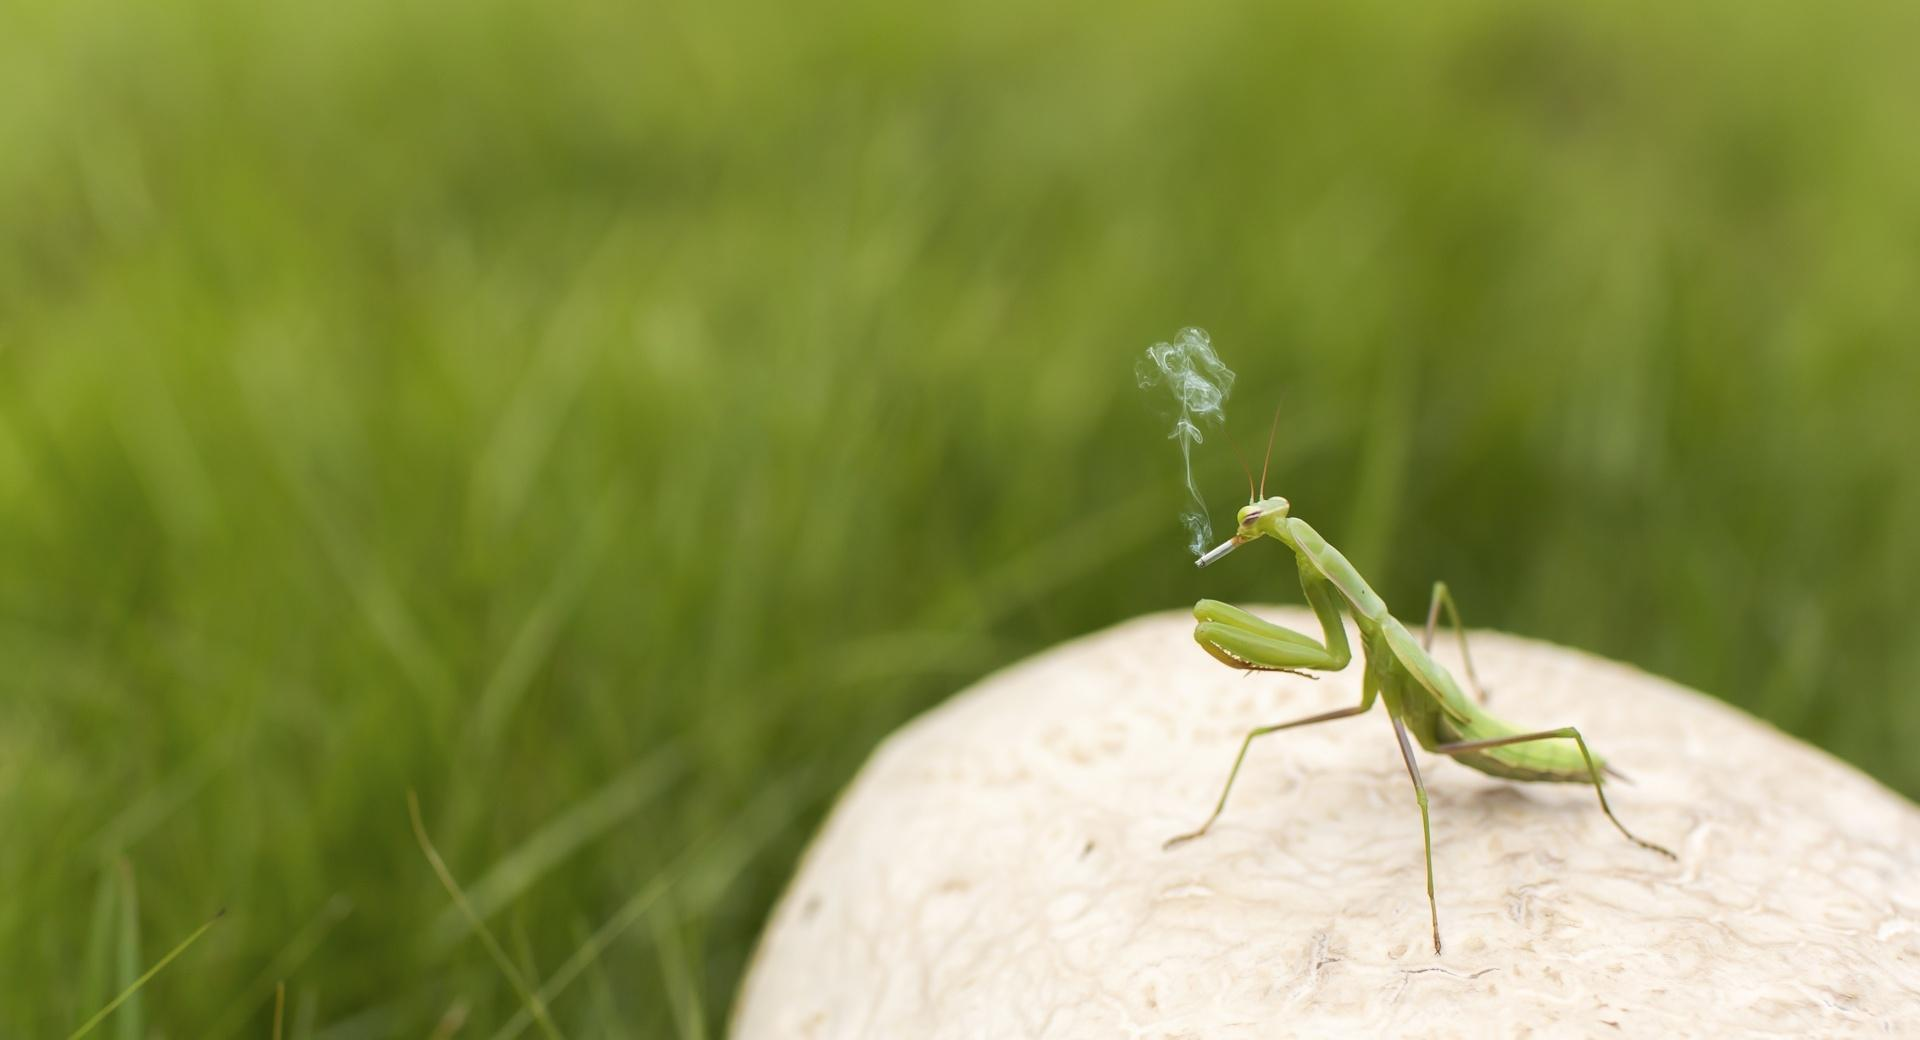 Mantis Smoking wallpapers HD quality